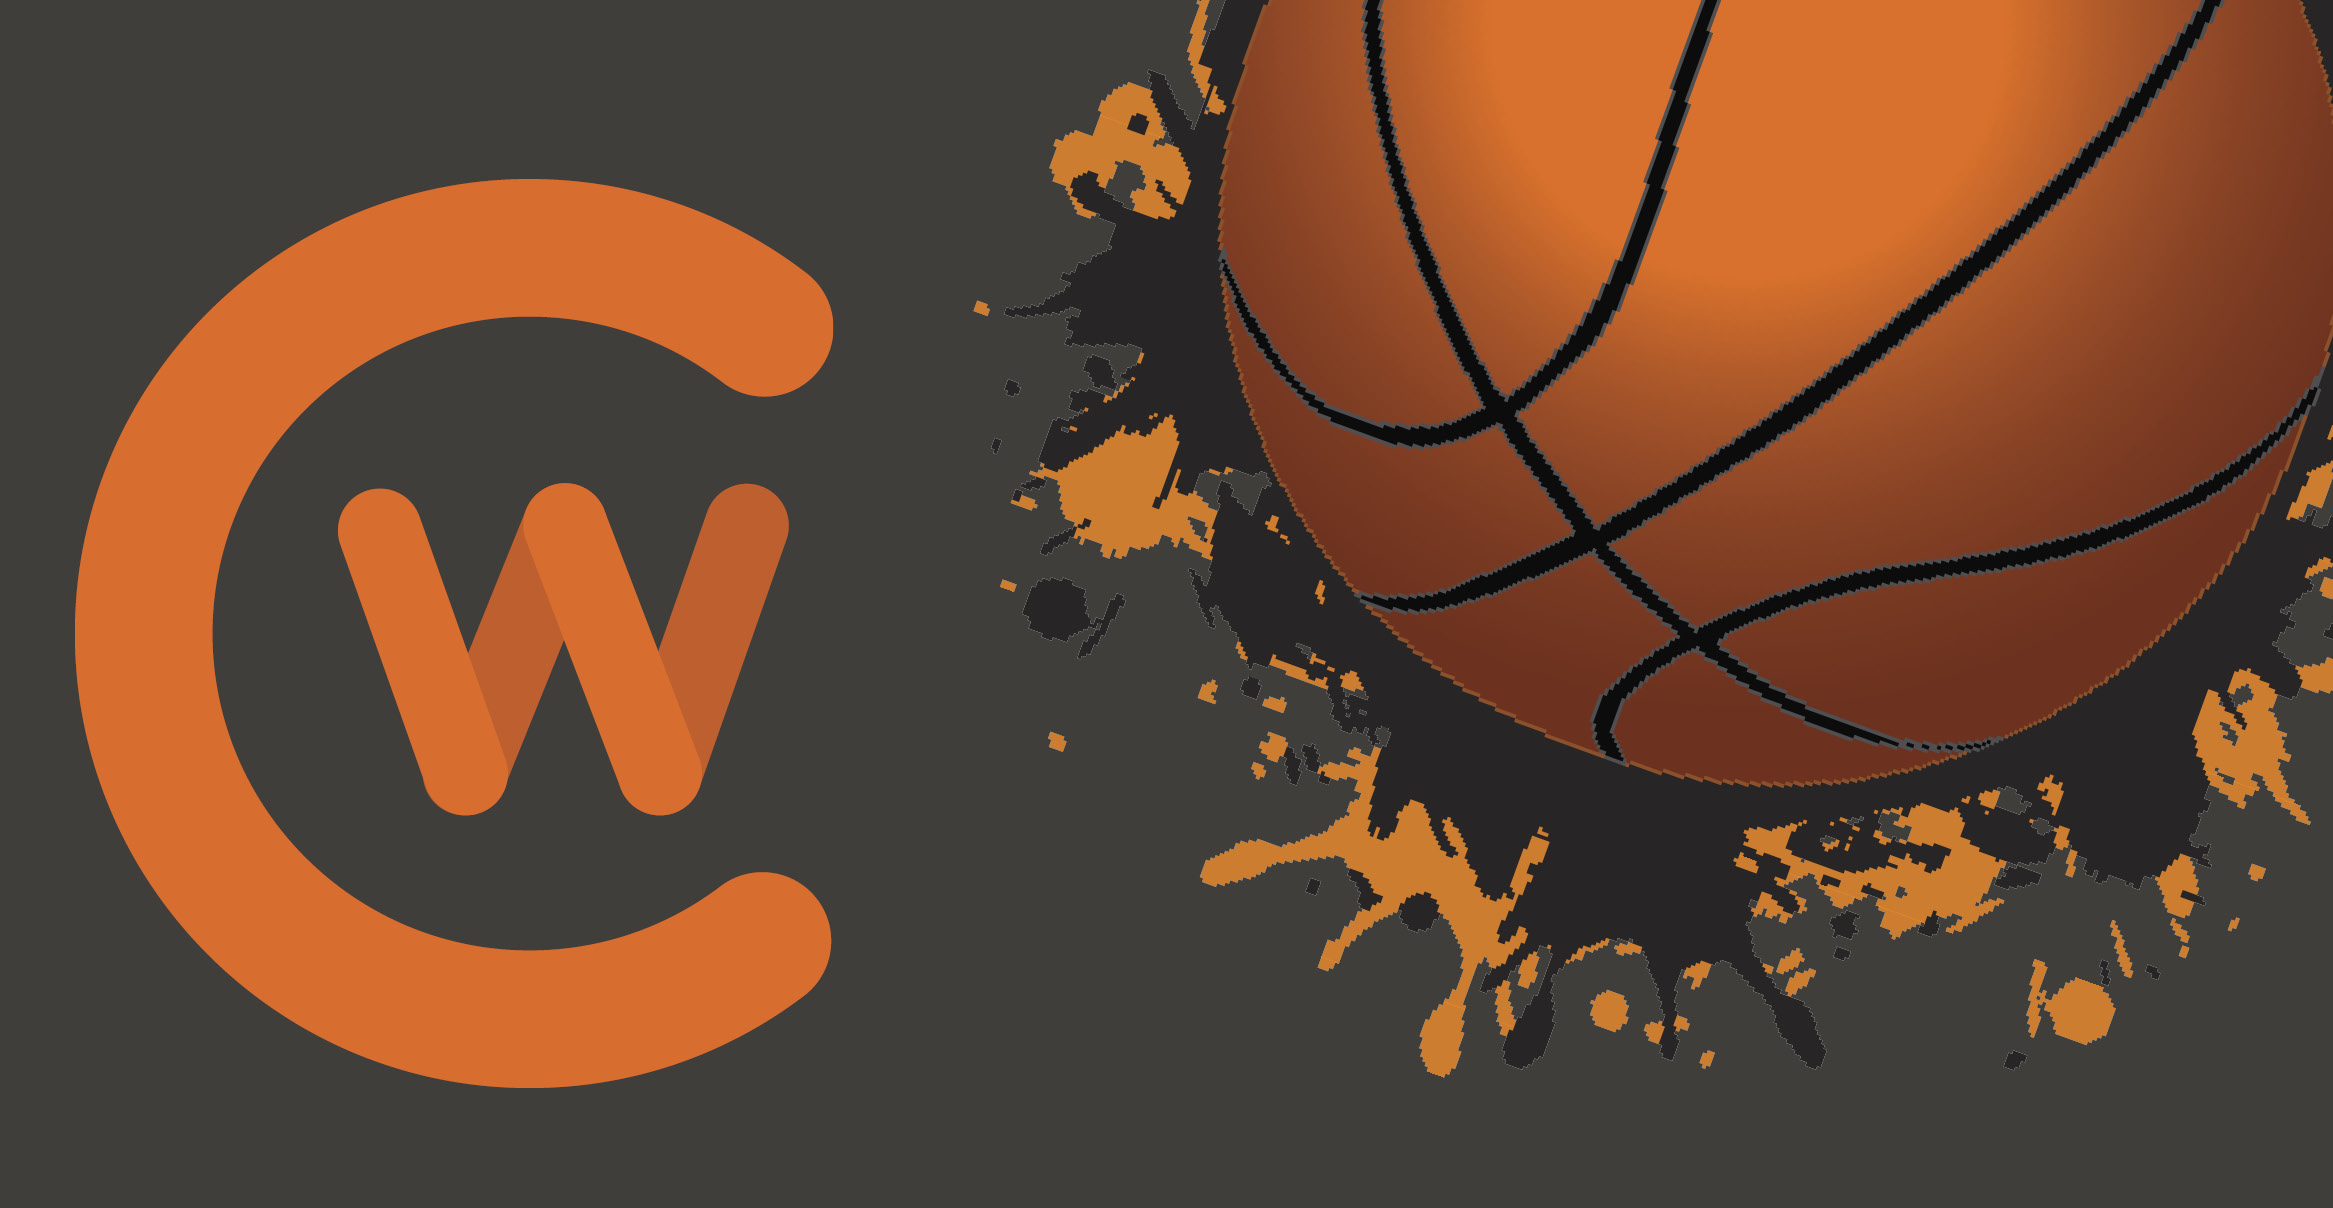 graphic of a basketball with the CWC logo